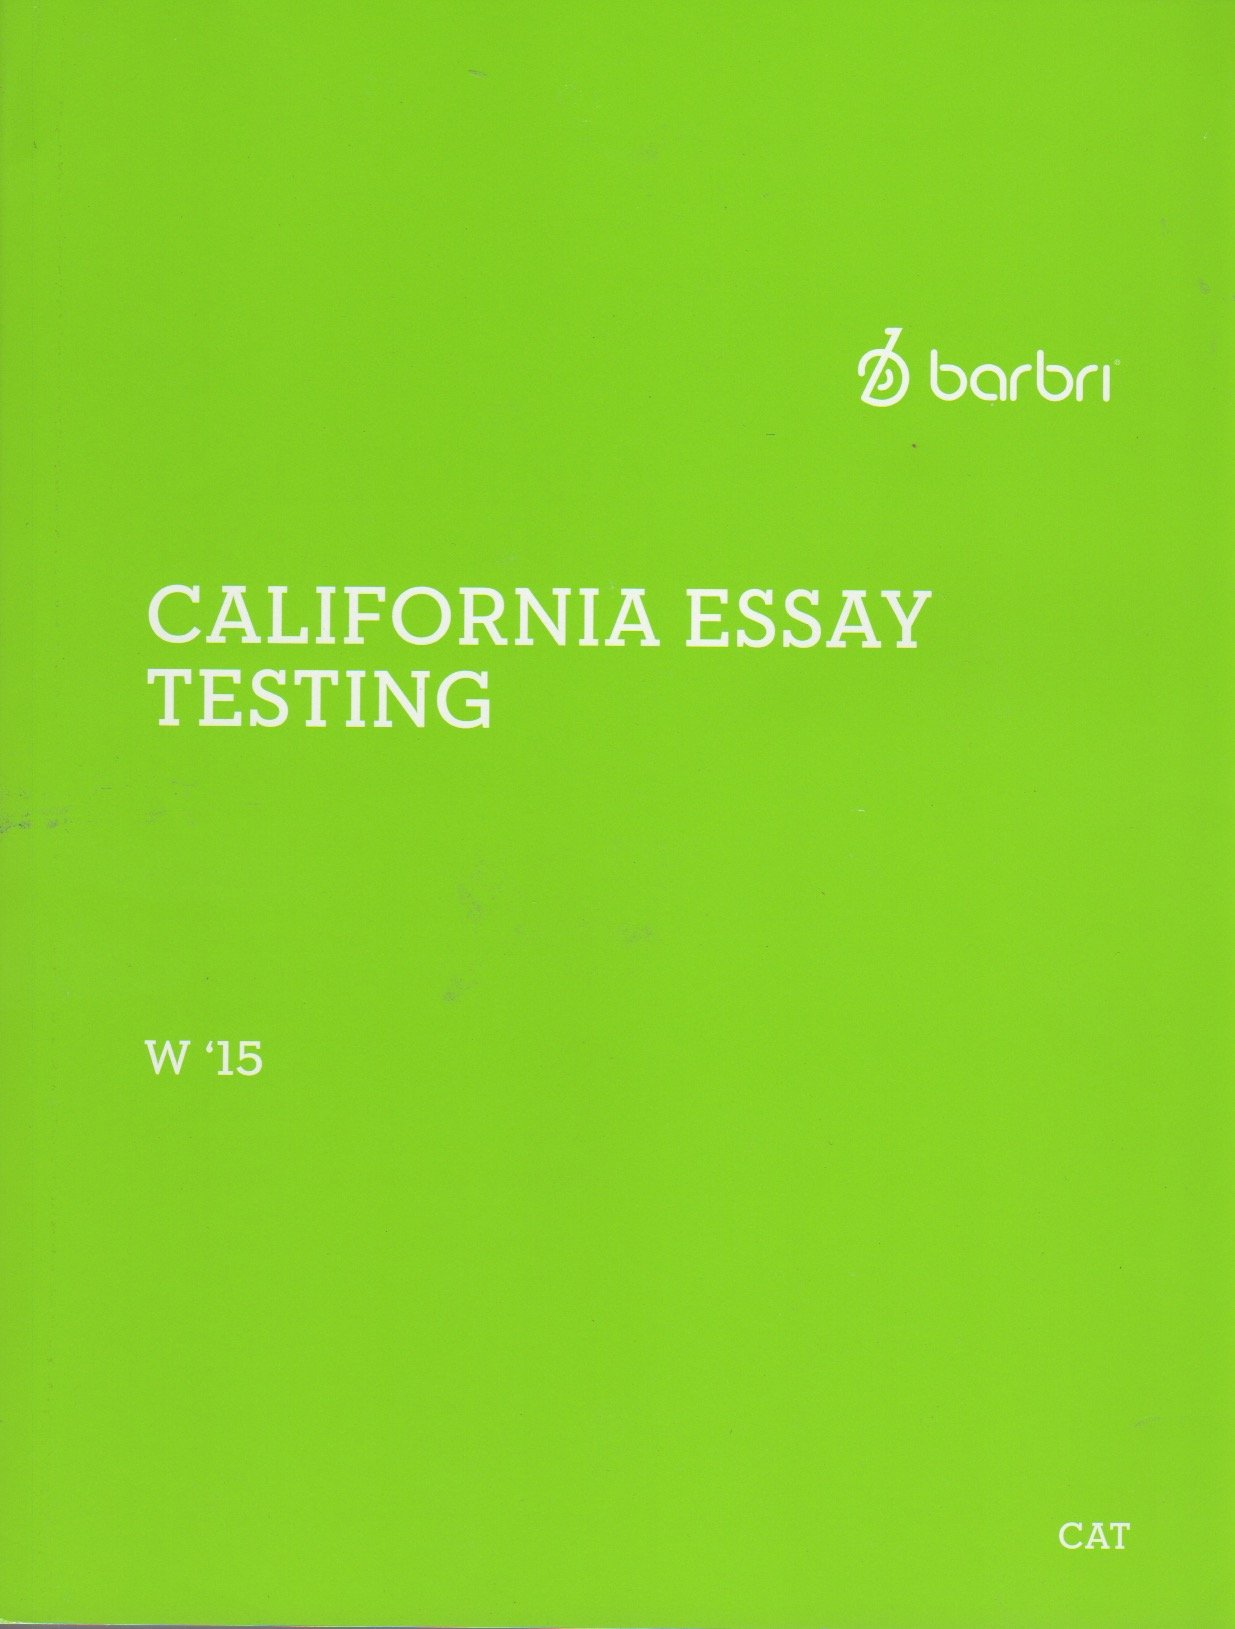 winter barbri california essay testing book barbri winter 2015 barbri california essay testing book barbri 0702865192271 com books